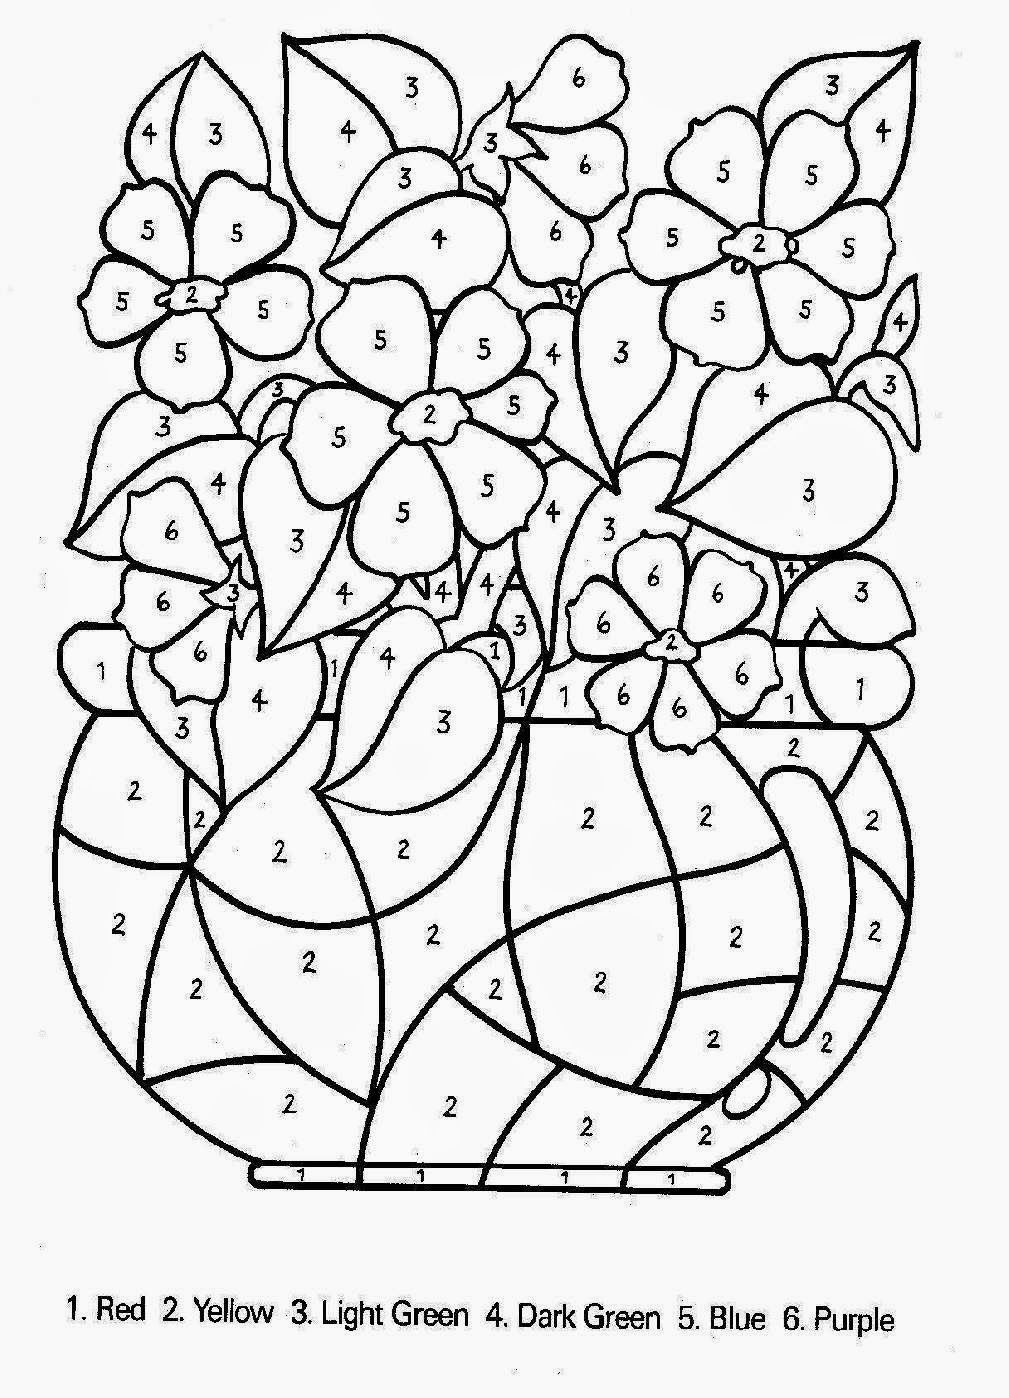 Number Coloring Sheets | Free Coloring Sheet | Activity Sheets ...